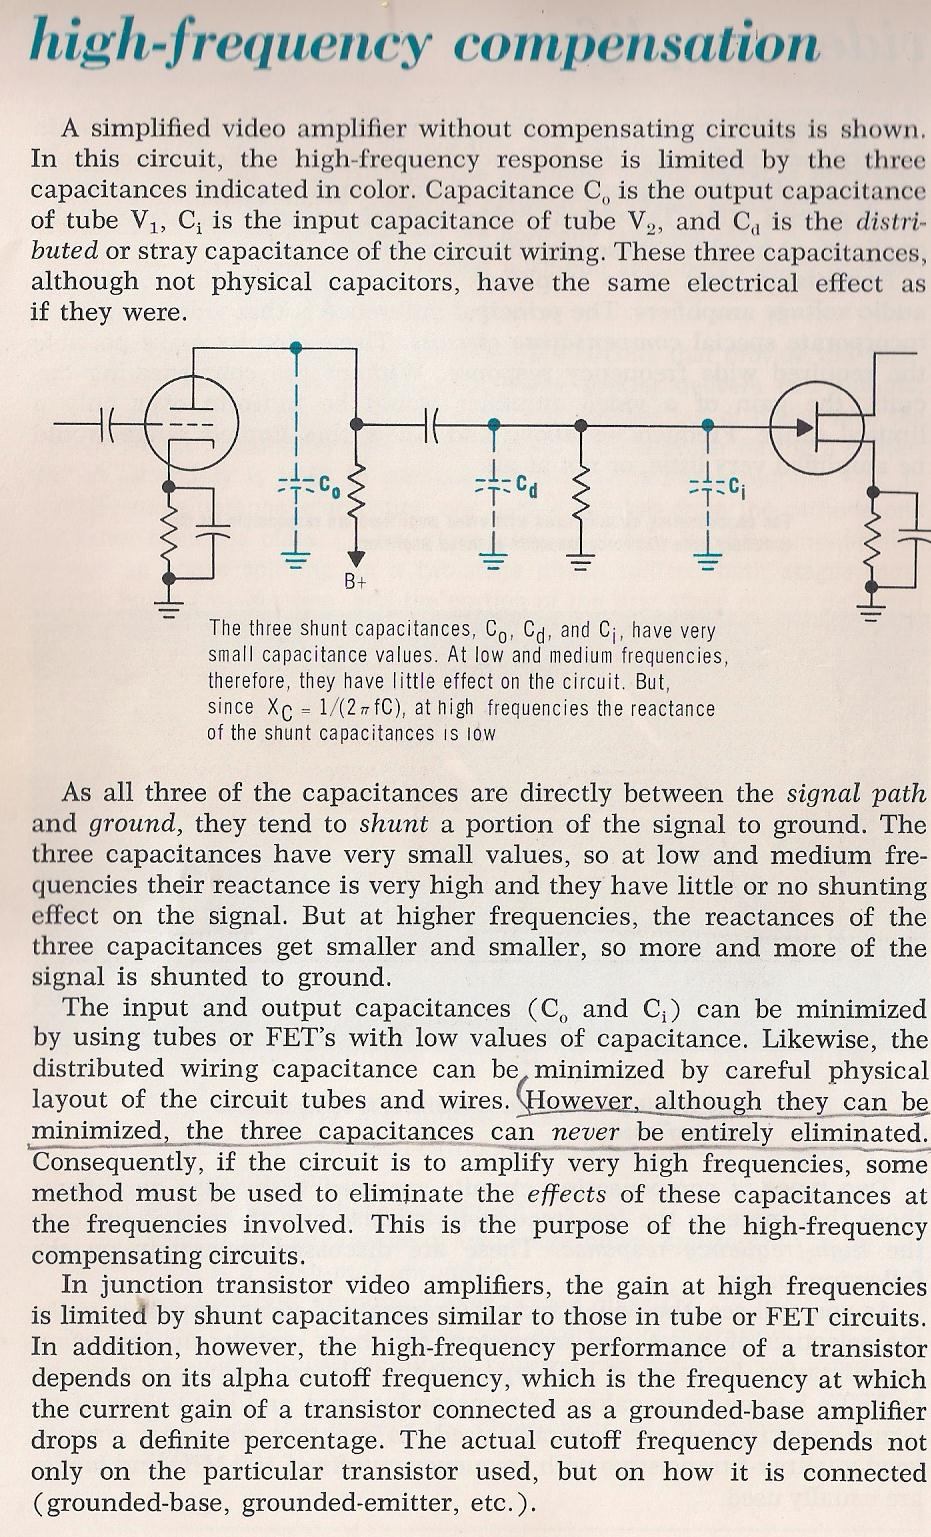 Amplifiers Video Amplifier Circuit Diagram 033 Circuits For High Frequency Compensation By Larry E Gugle K4rfe 034 Other